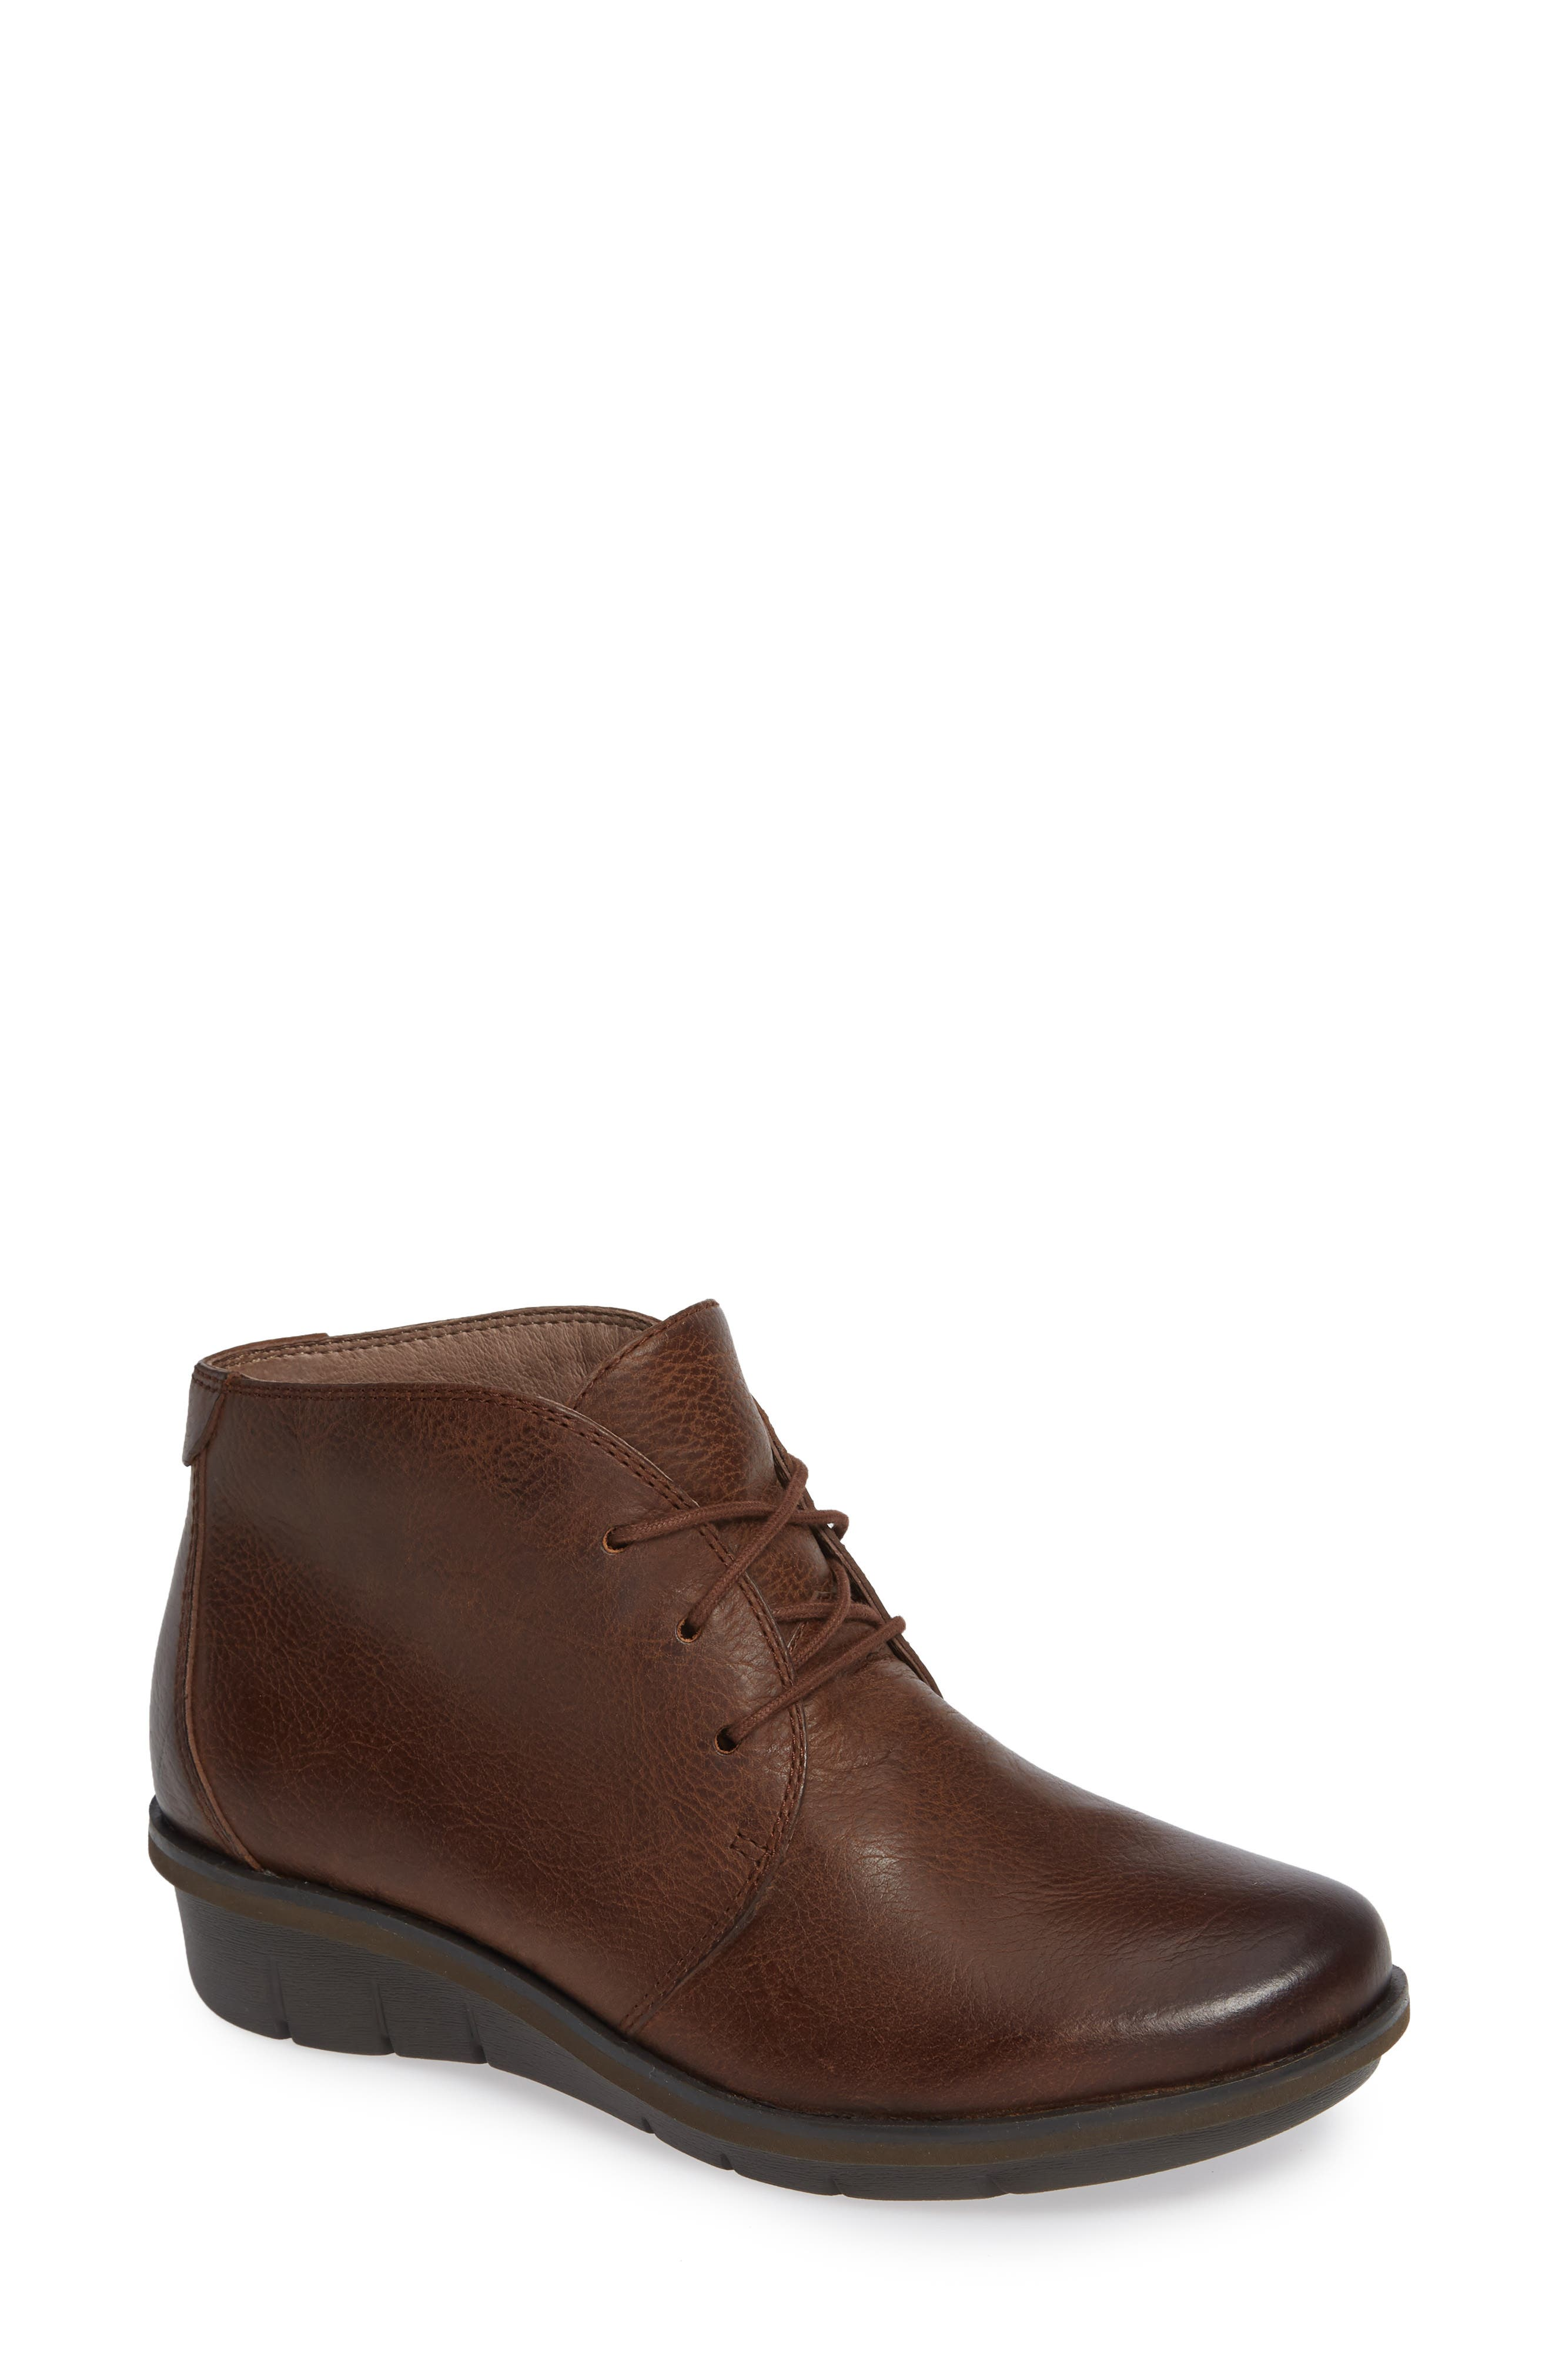 Joy Bootie,                         Main,                         color, Brown Burnished Nubuck Leather